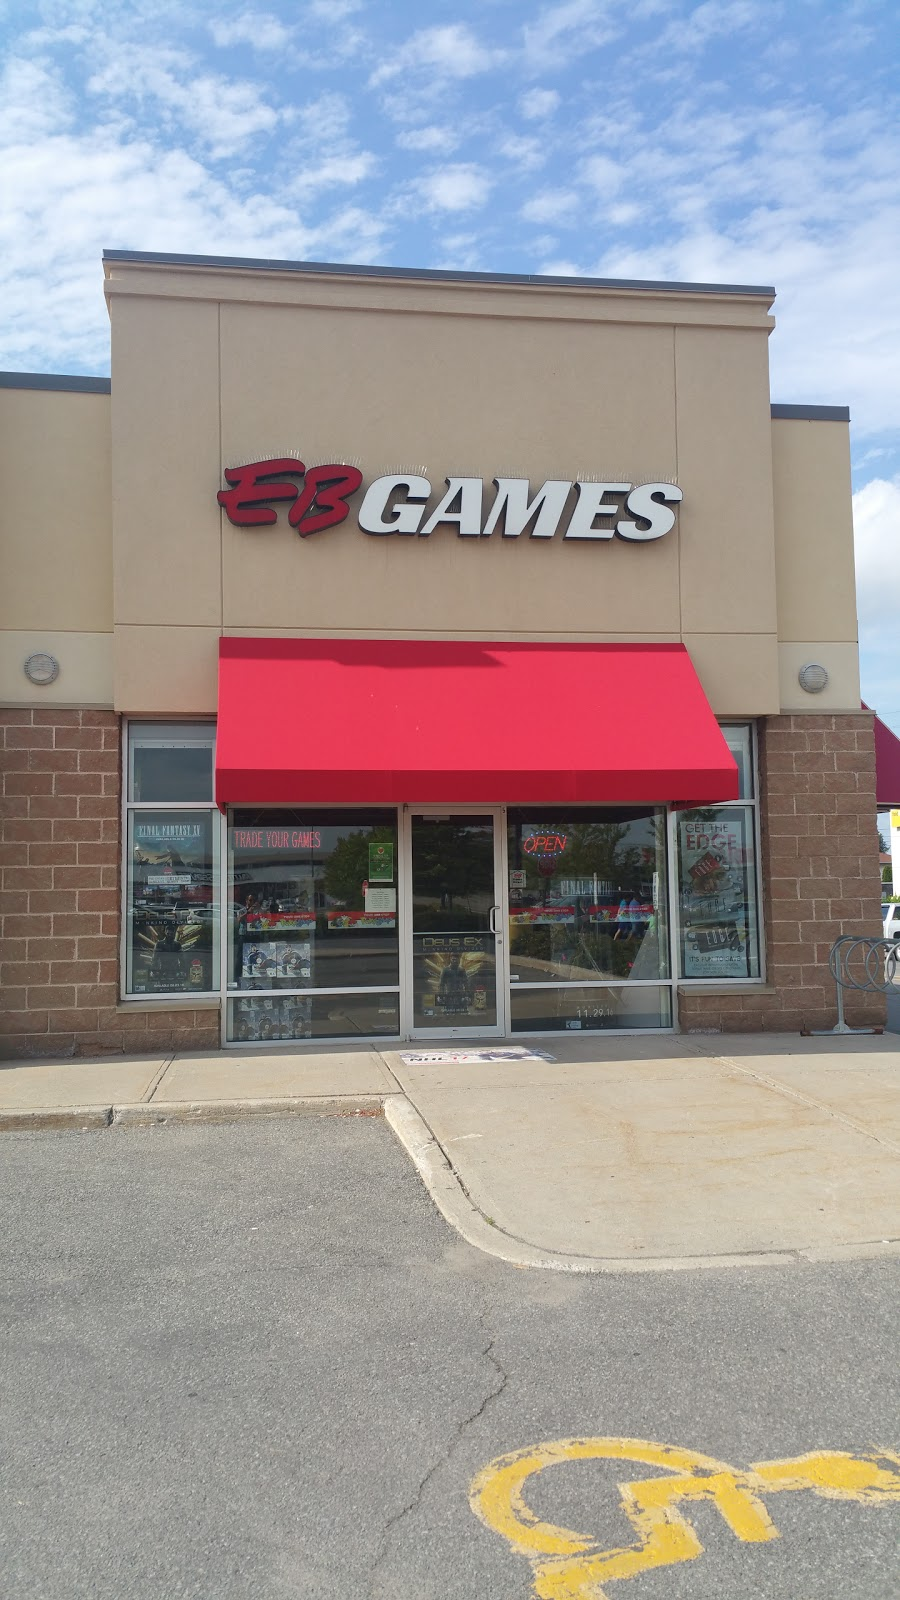 EB Games | store | 3890 Innes Rd h5, Orléans, ON K1W 1K9, Canada | 6138242766 OR +1 613-824-2766